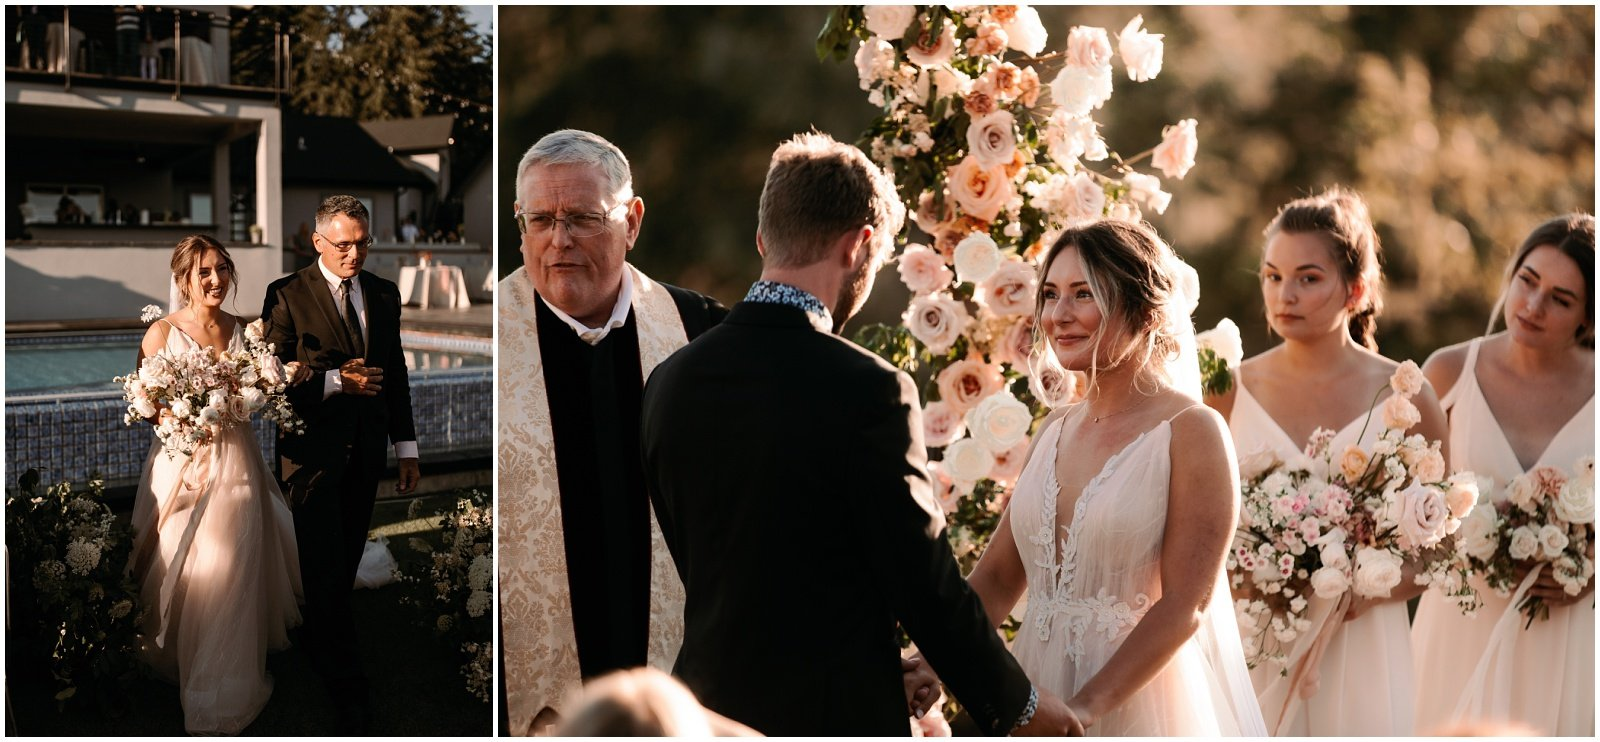 bride and groom saying vows at their ceremony wedding in oregon